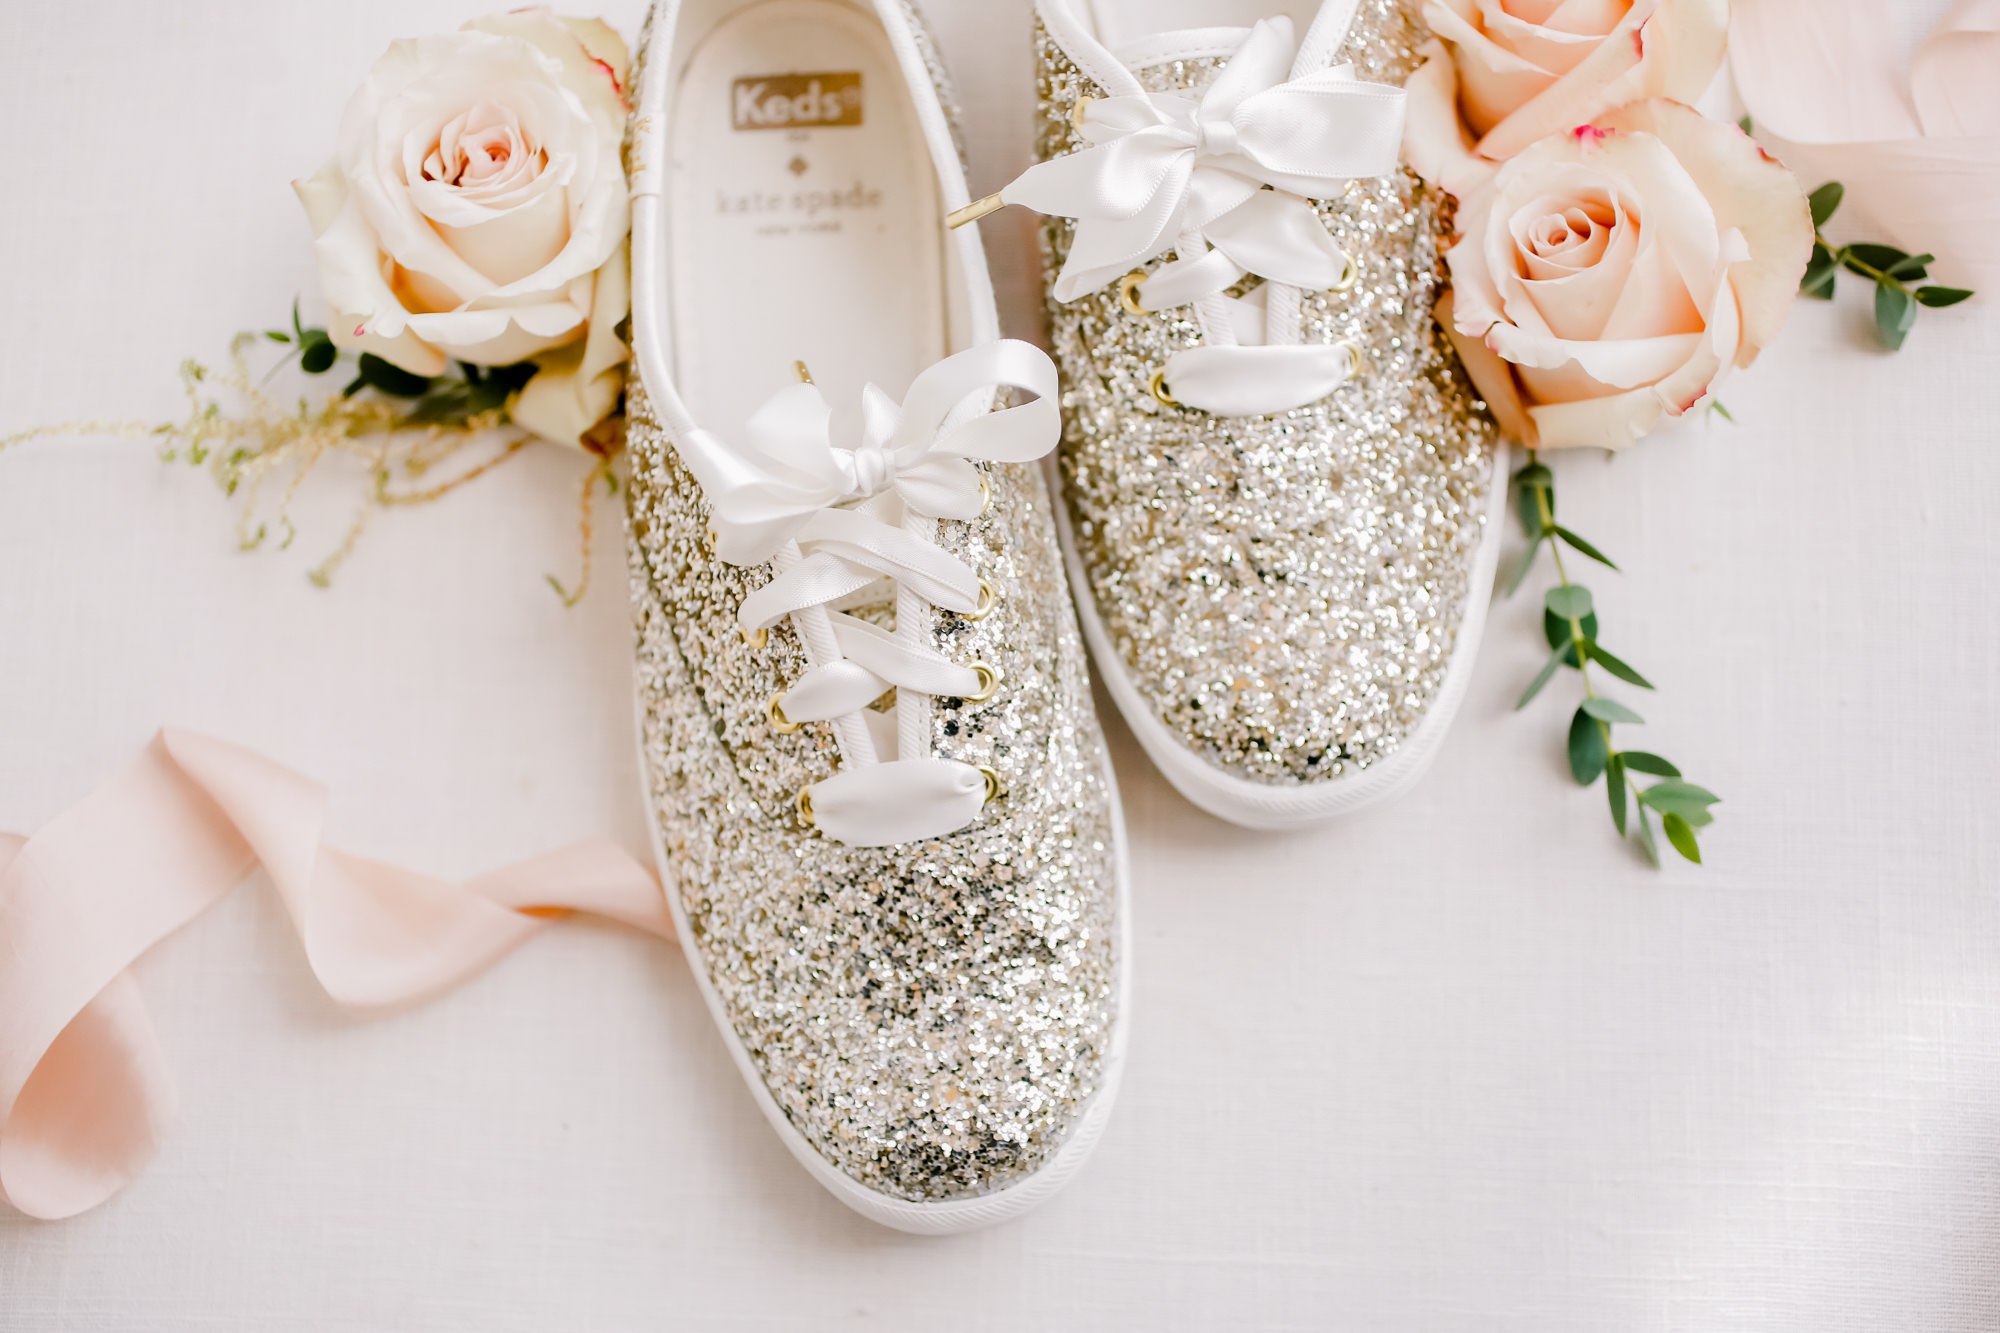 Tampa Wedding Bride Tennis Shoes Gold Glitter Keds by Kate Spade